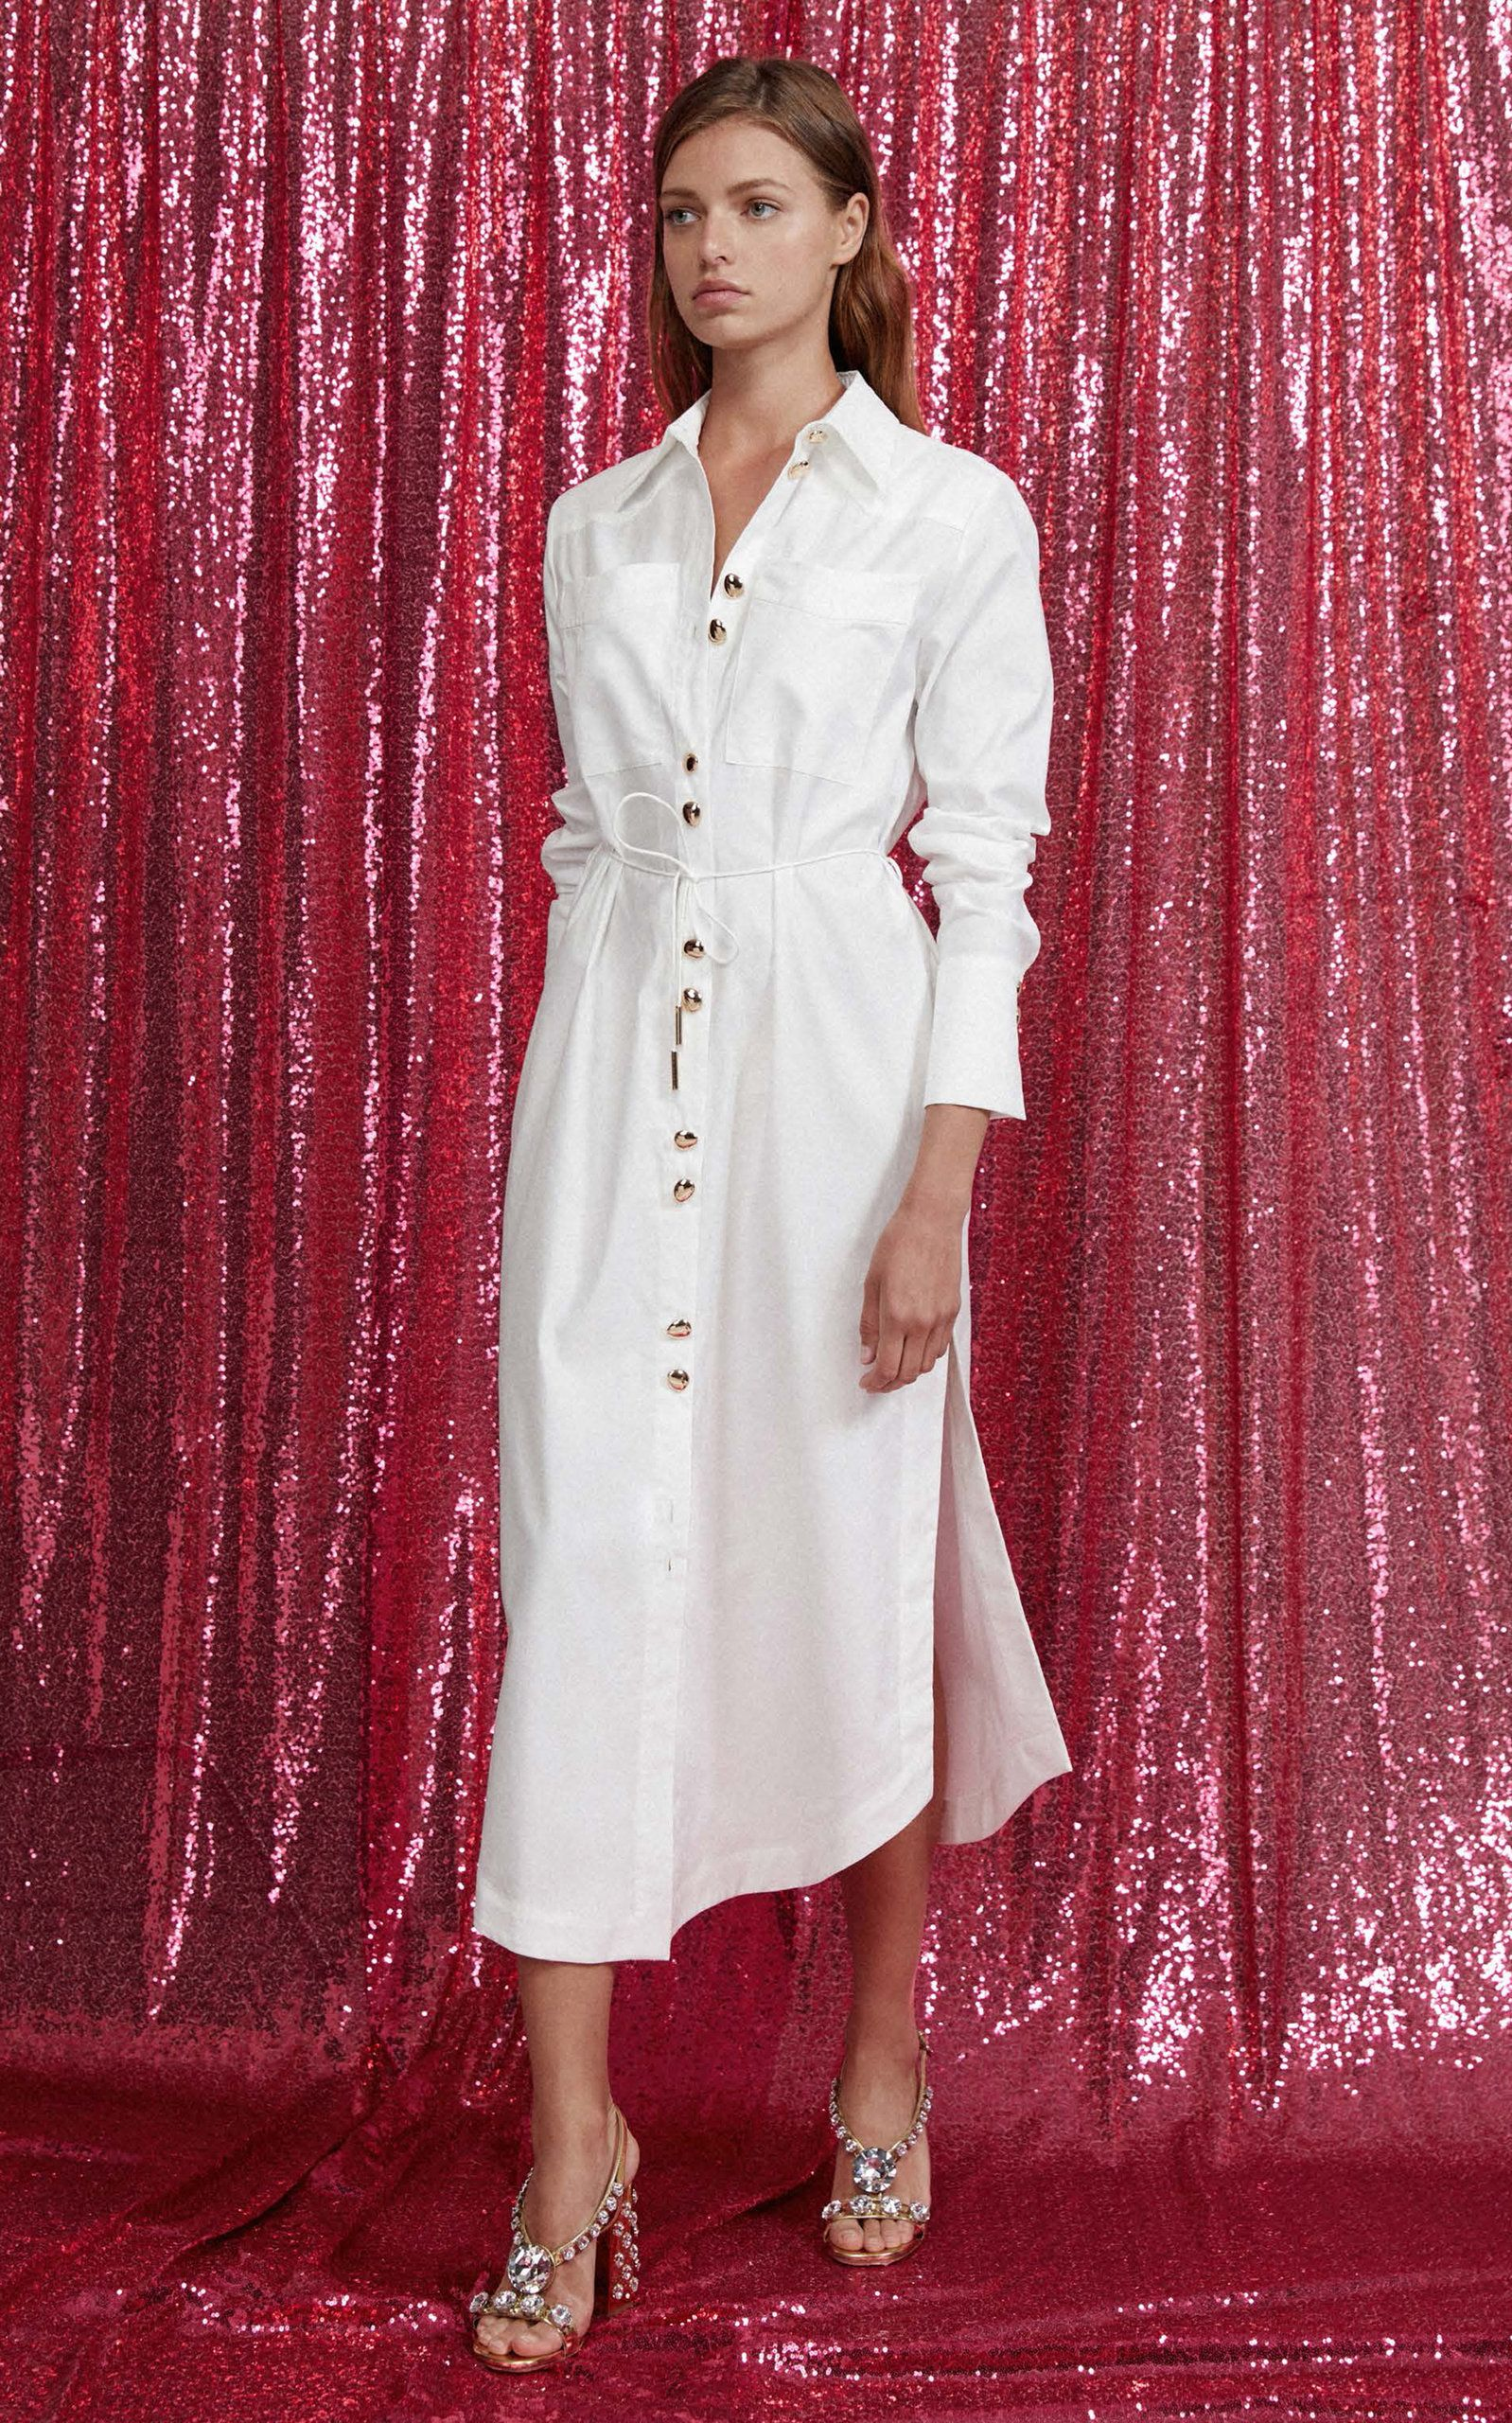 Acler clifford cotton tie shirt dress with images